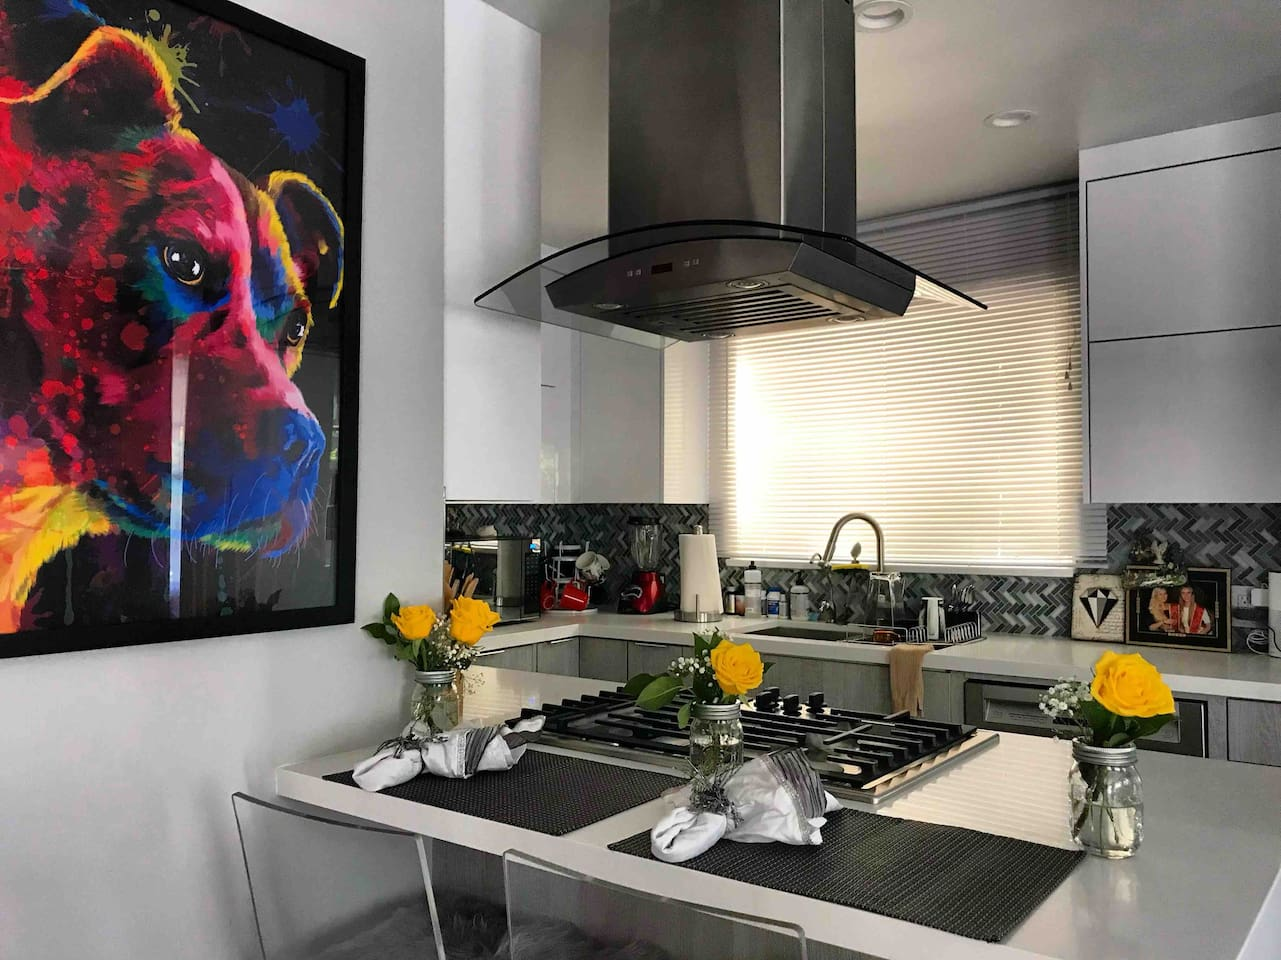 Newly remodeled kitchen with a new style